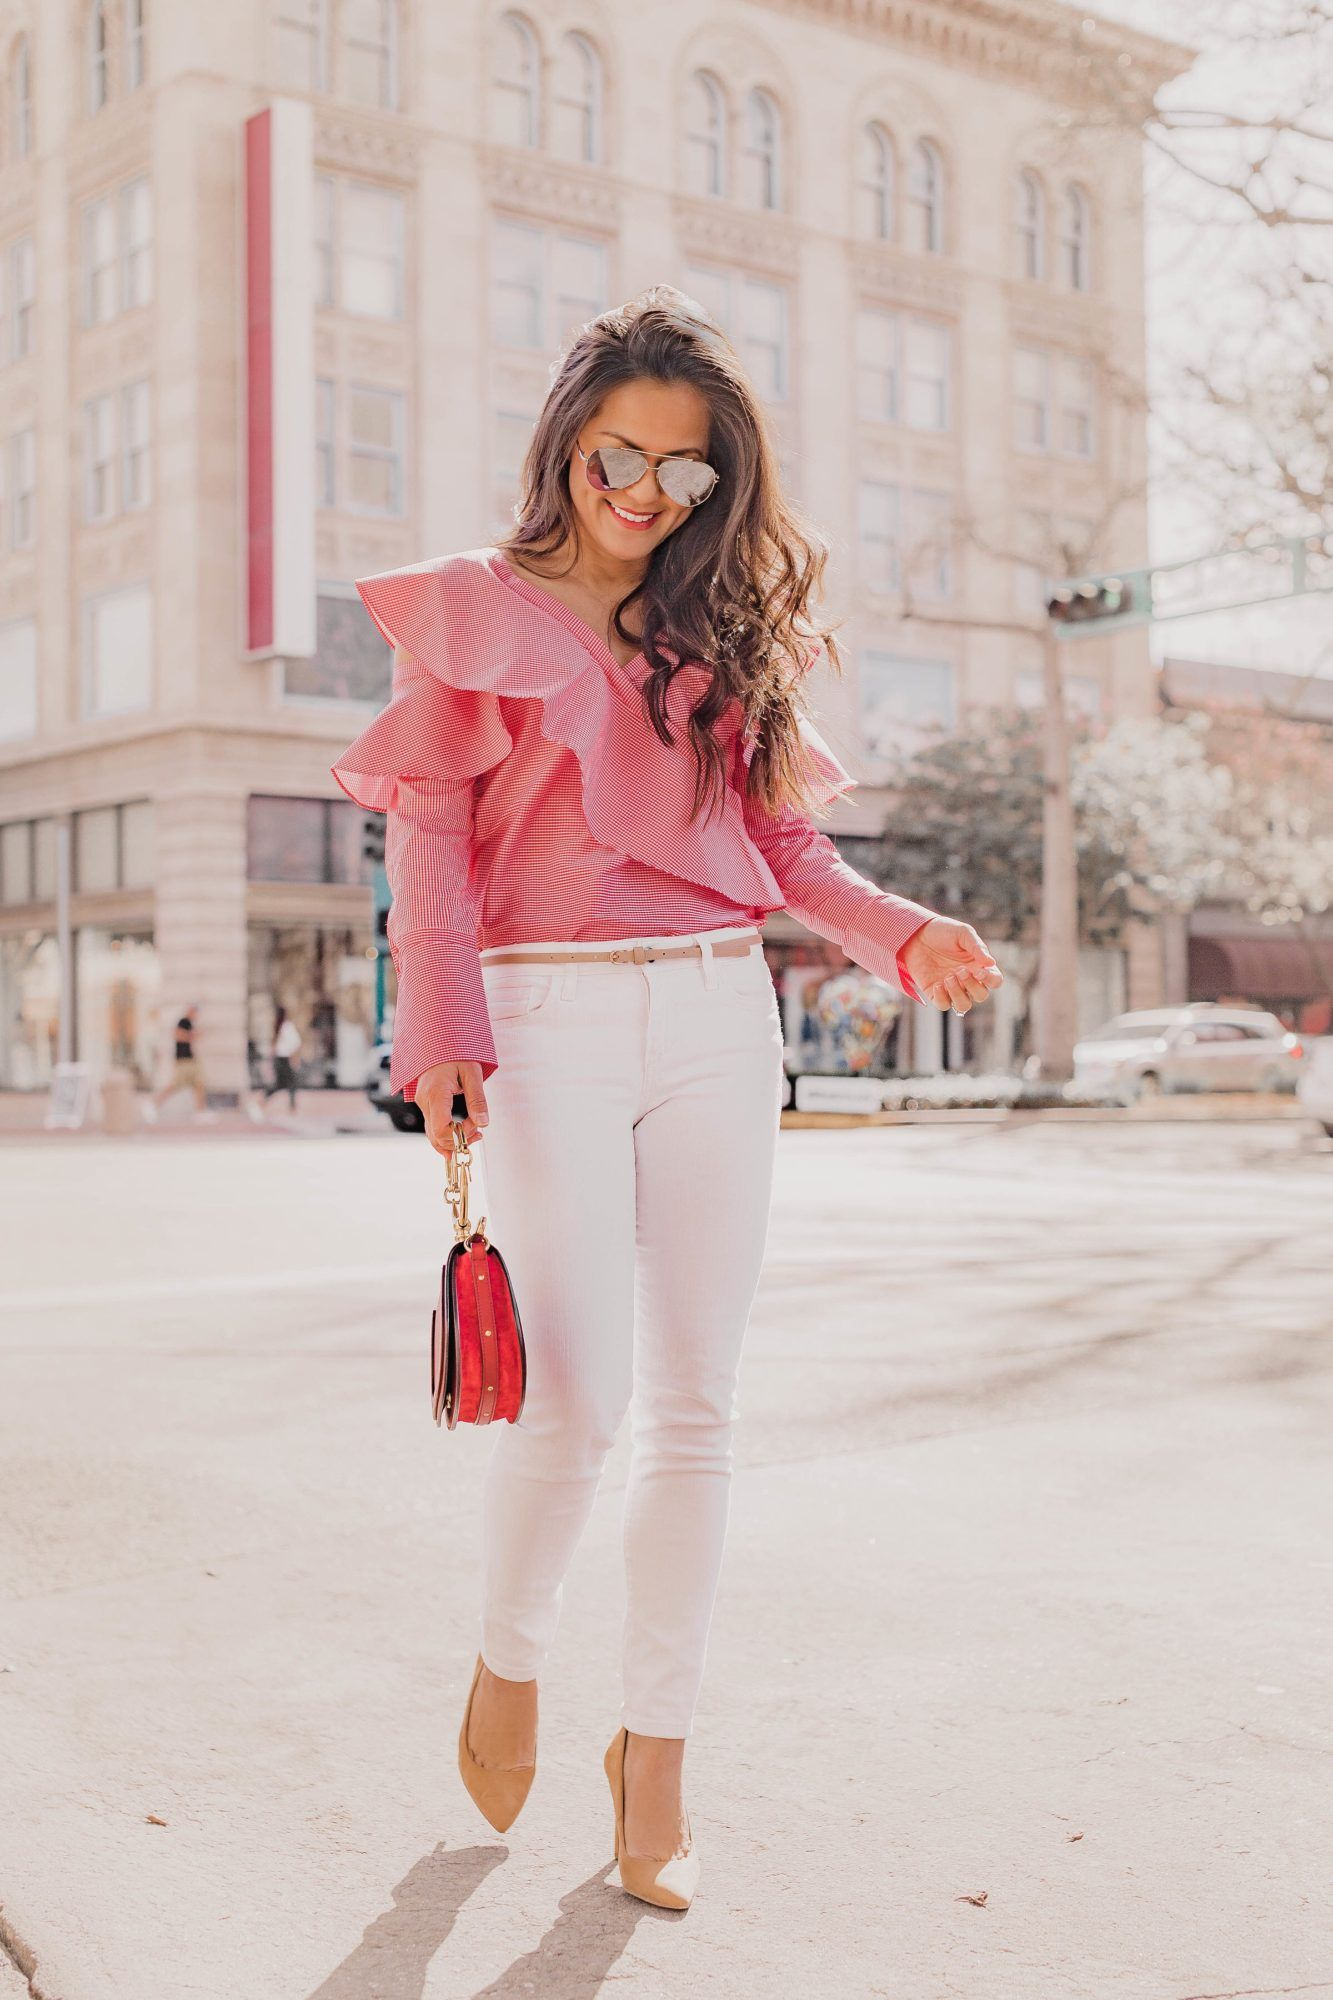 71234d0f3e9 Spring Ruffles + White Jeans on Jetting Jewels! Outfit Details: Gingham  Ruffle Top   White Jeans   Nude Pumps   Silver Aviators   Chloe Nile Bag